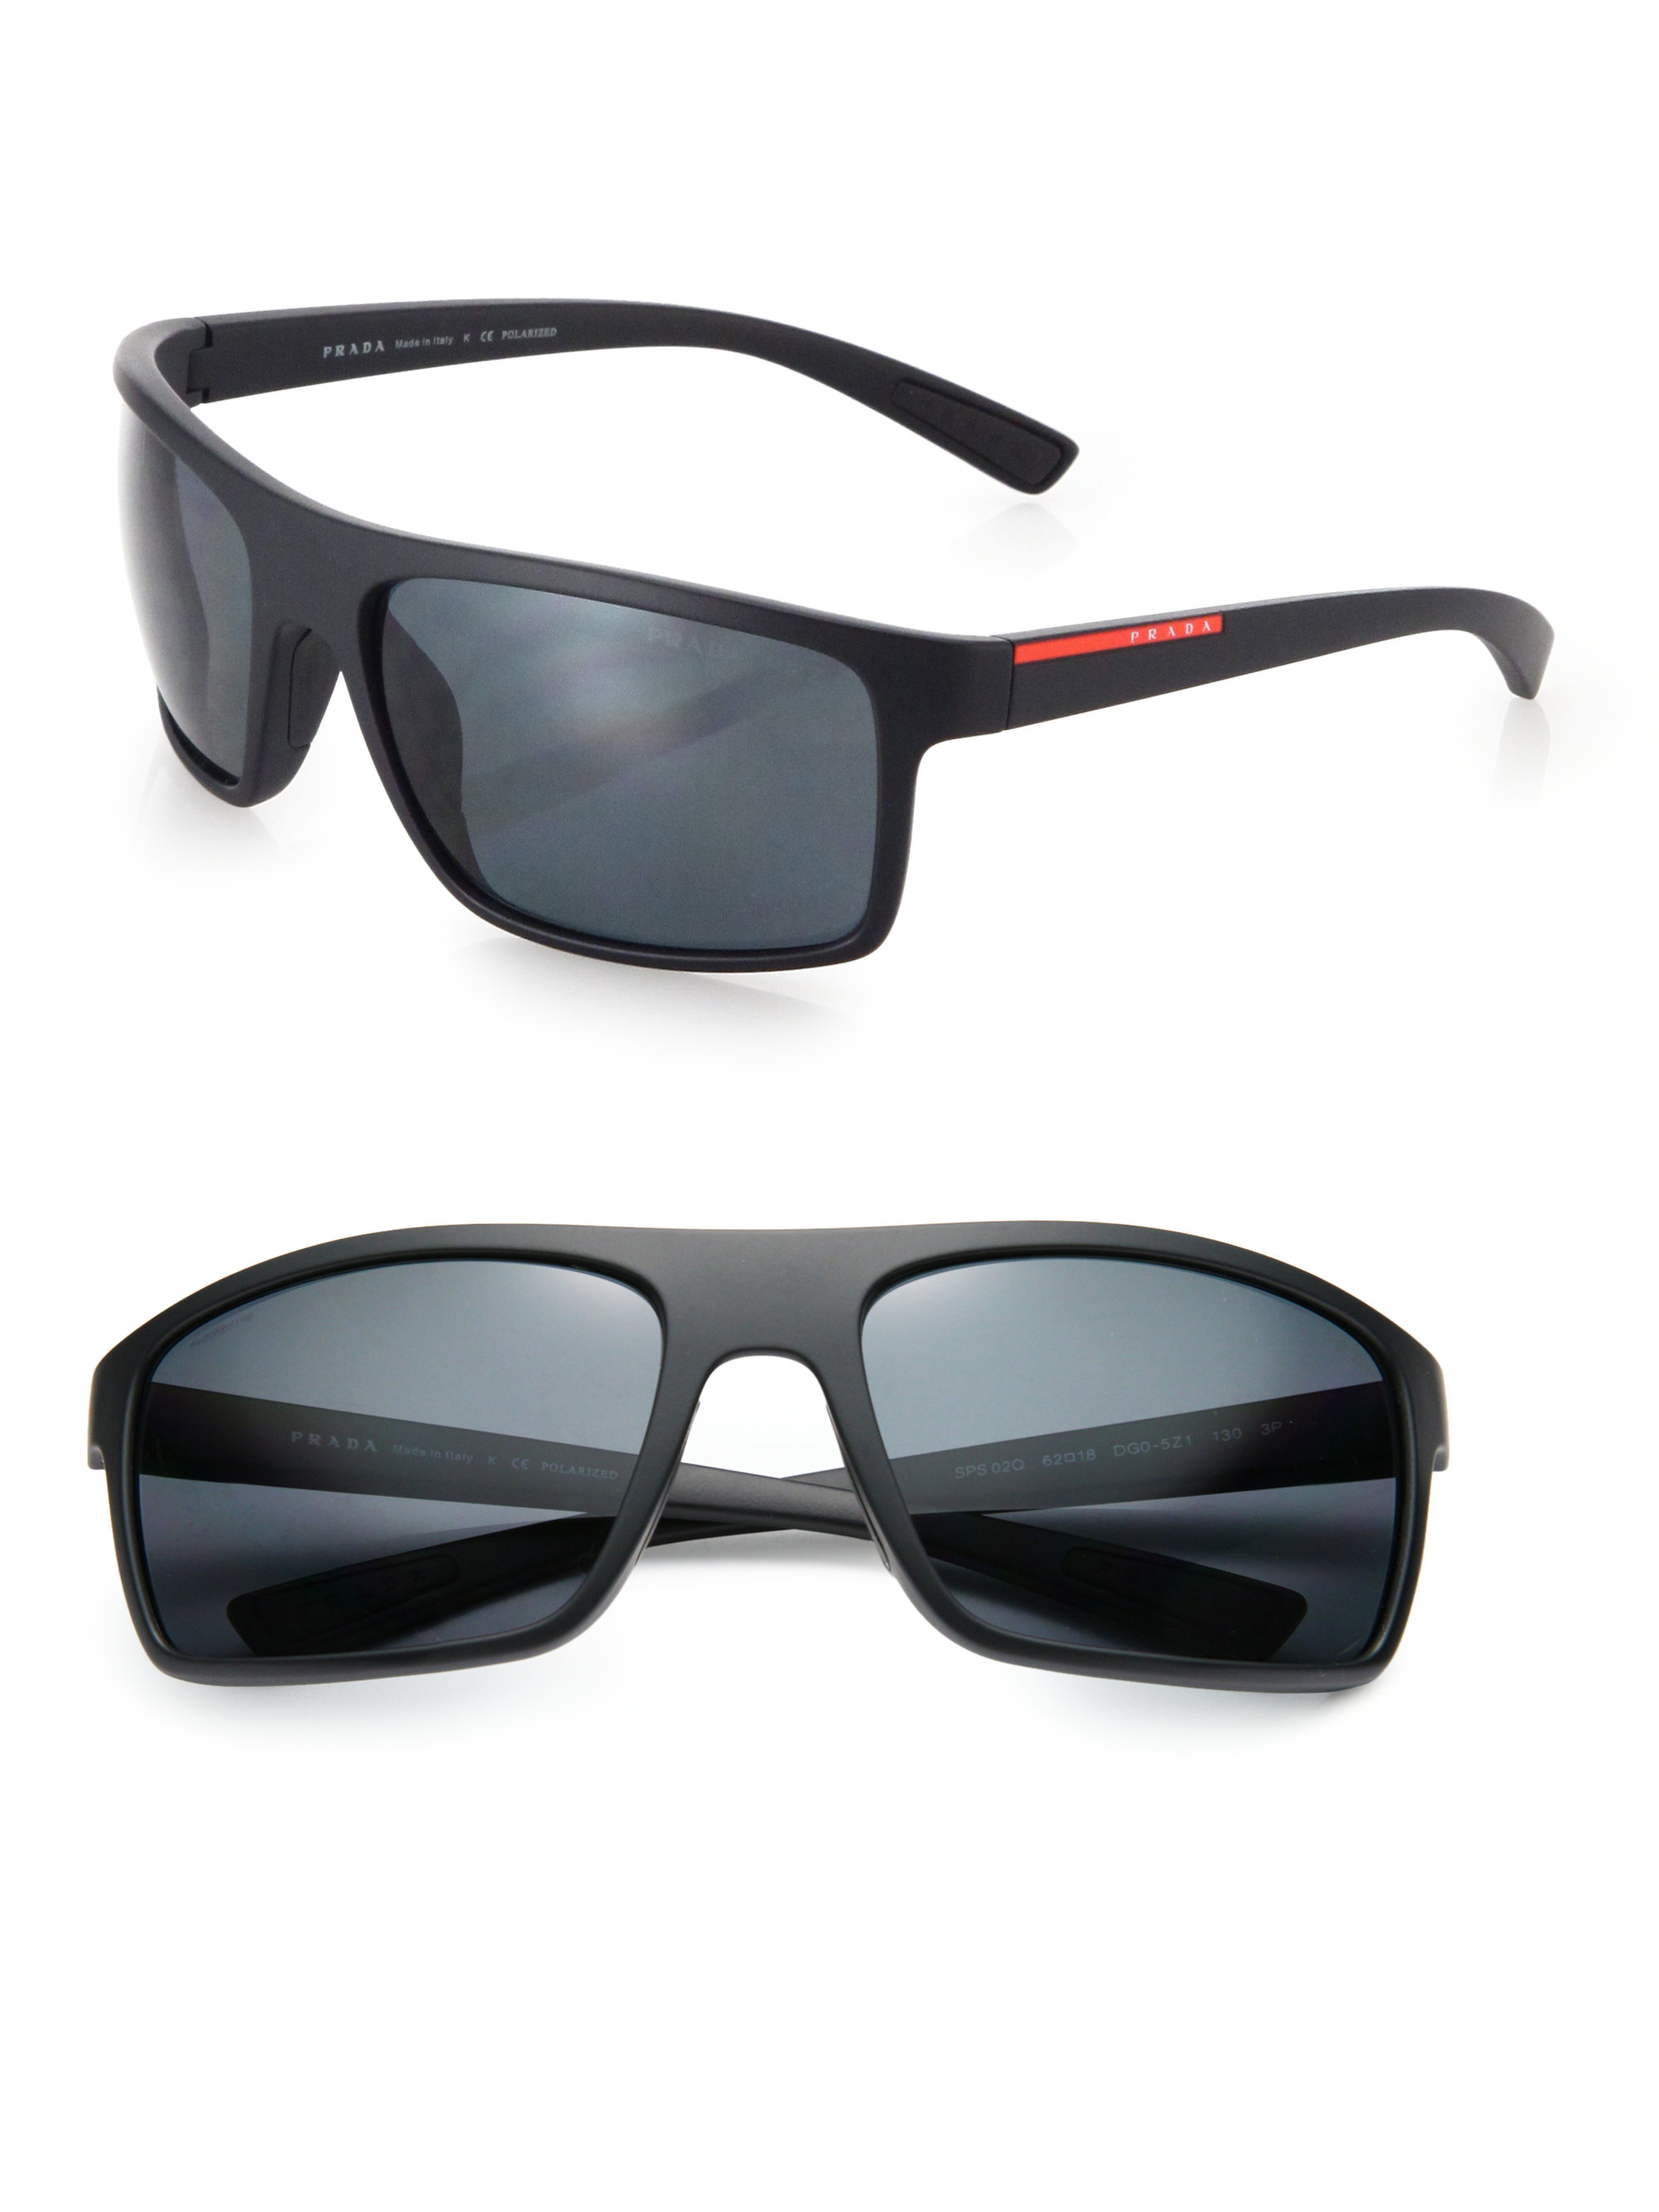 12fab1b8ce0ee ... where to buy lyst prada 62mm rectangle sunglasses in black for men  3eb0a f2f11